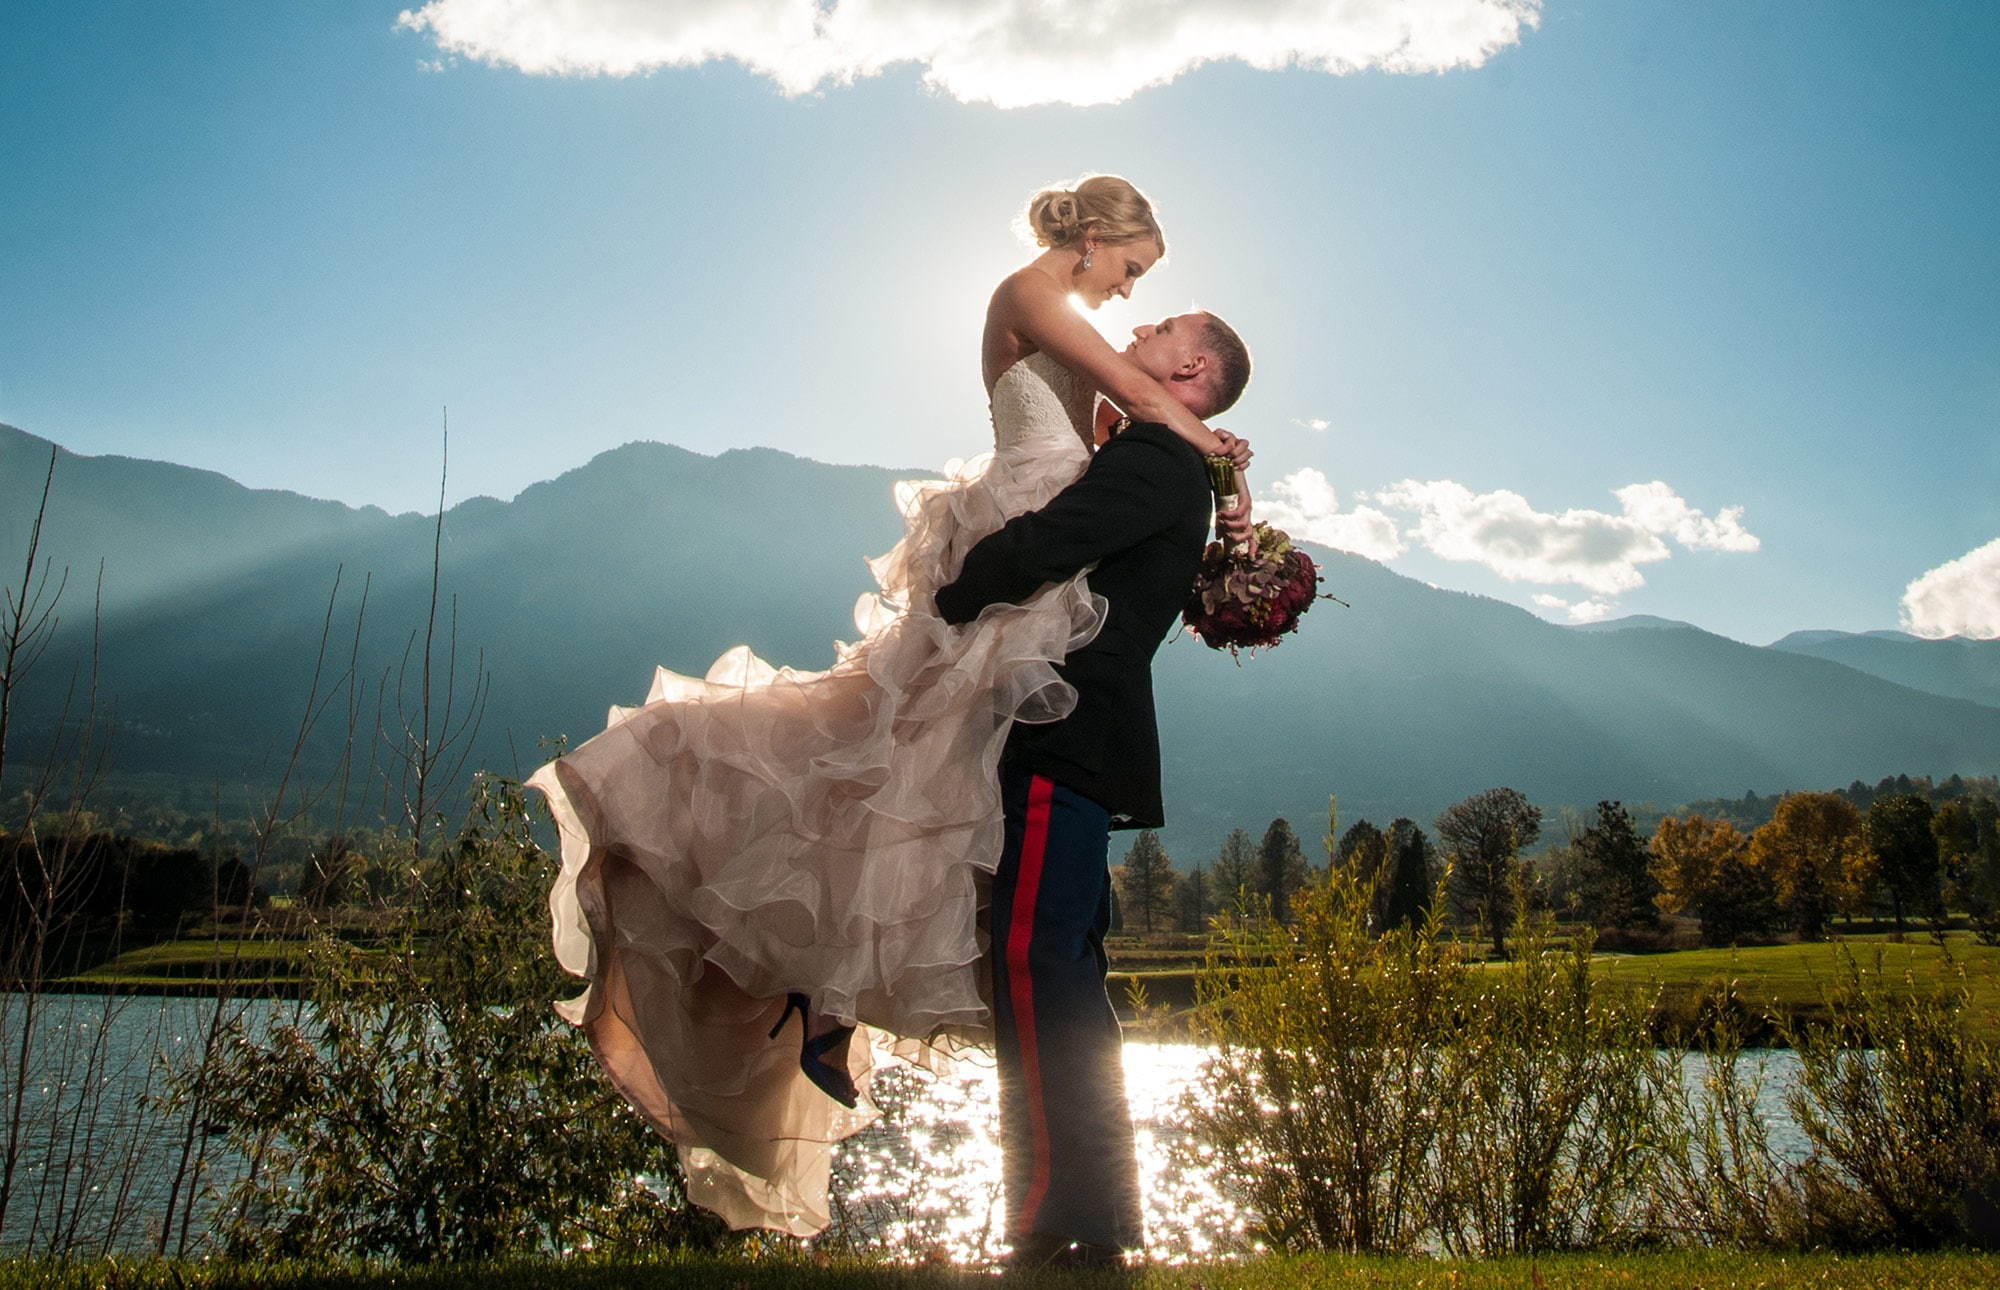 Colorado springs wedding photographers colorado springs weddings your love our art forever junglespirit Image collections